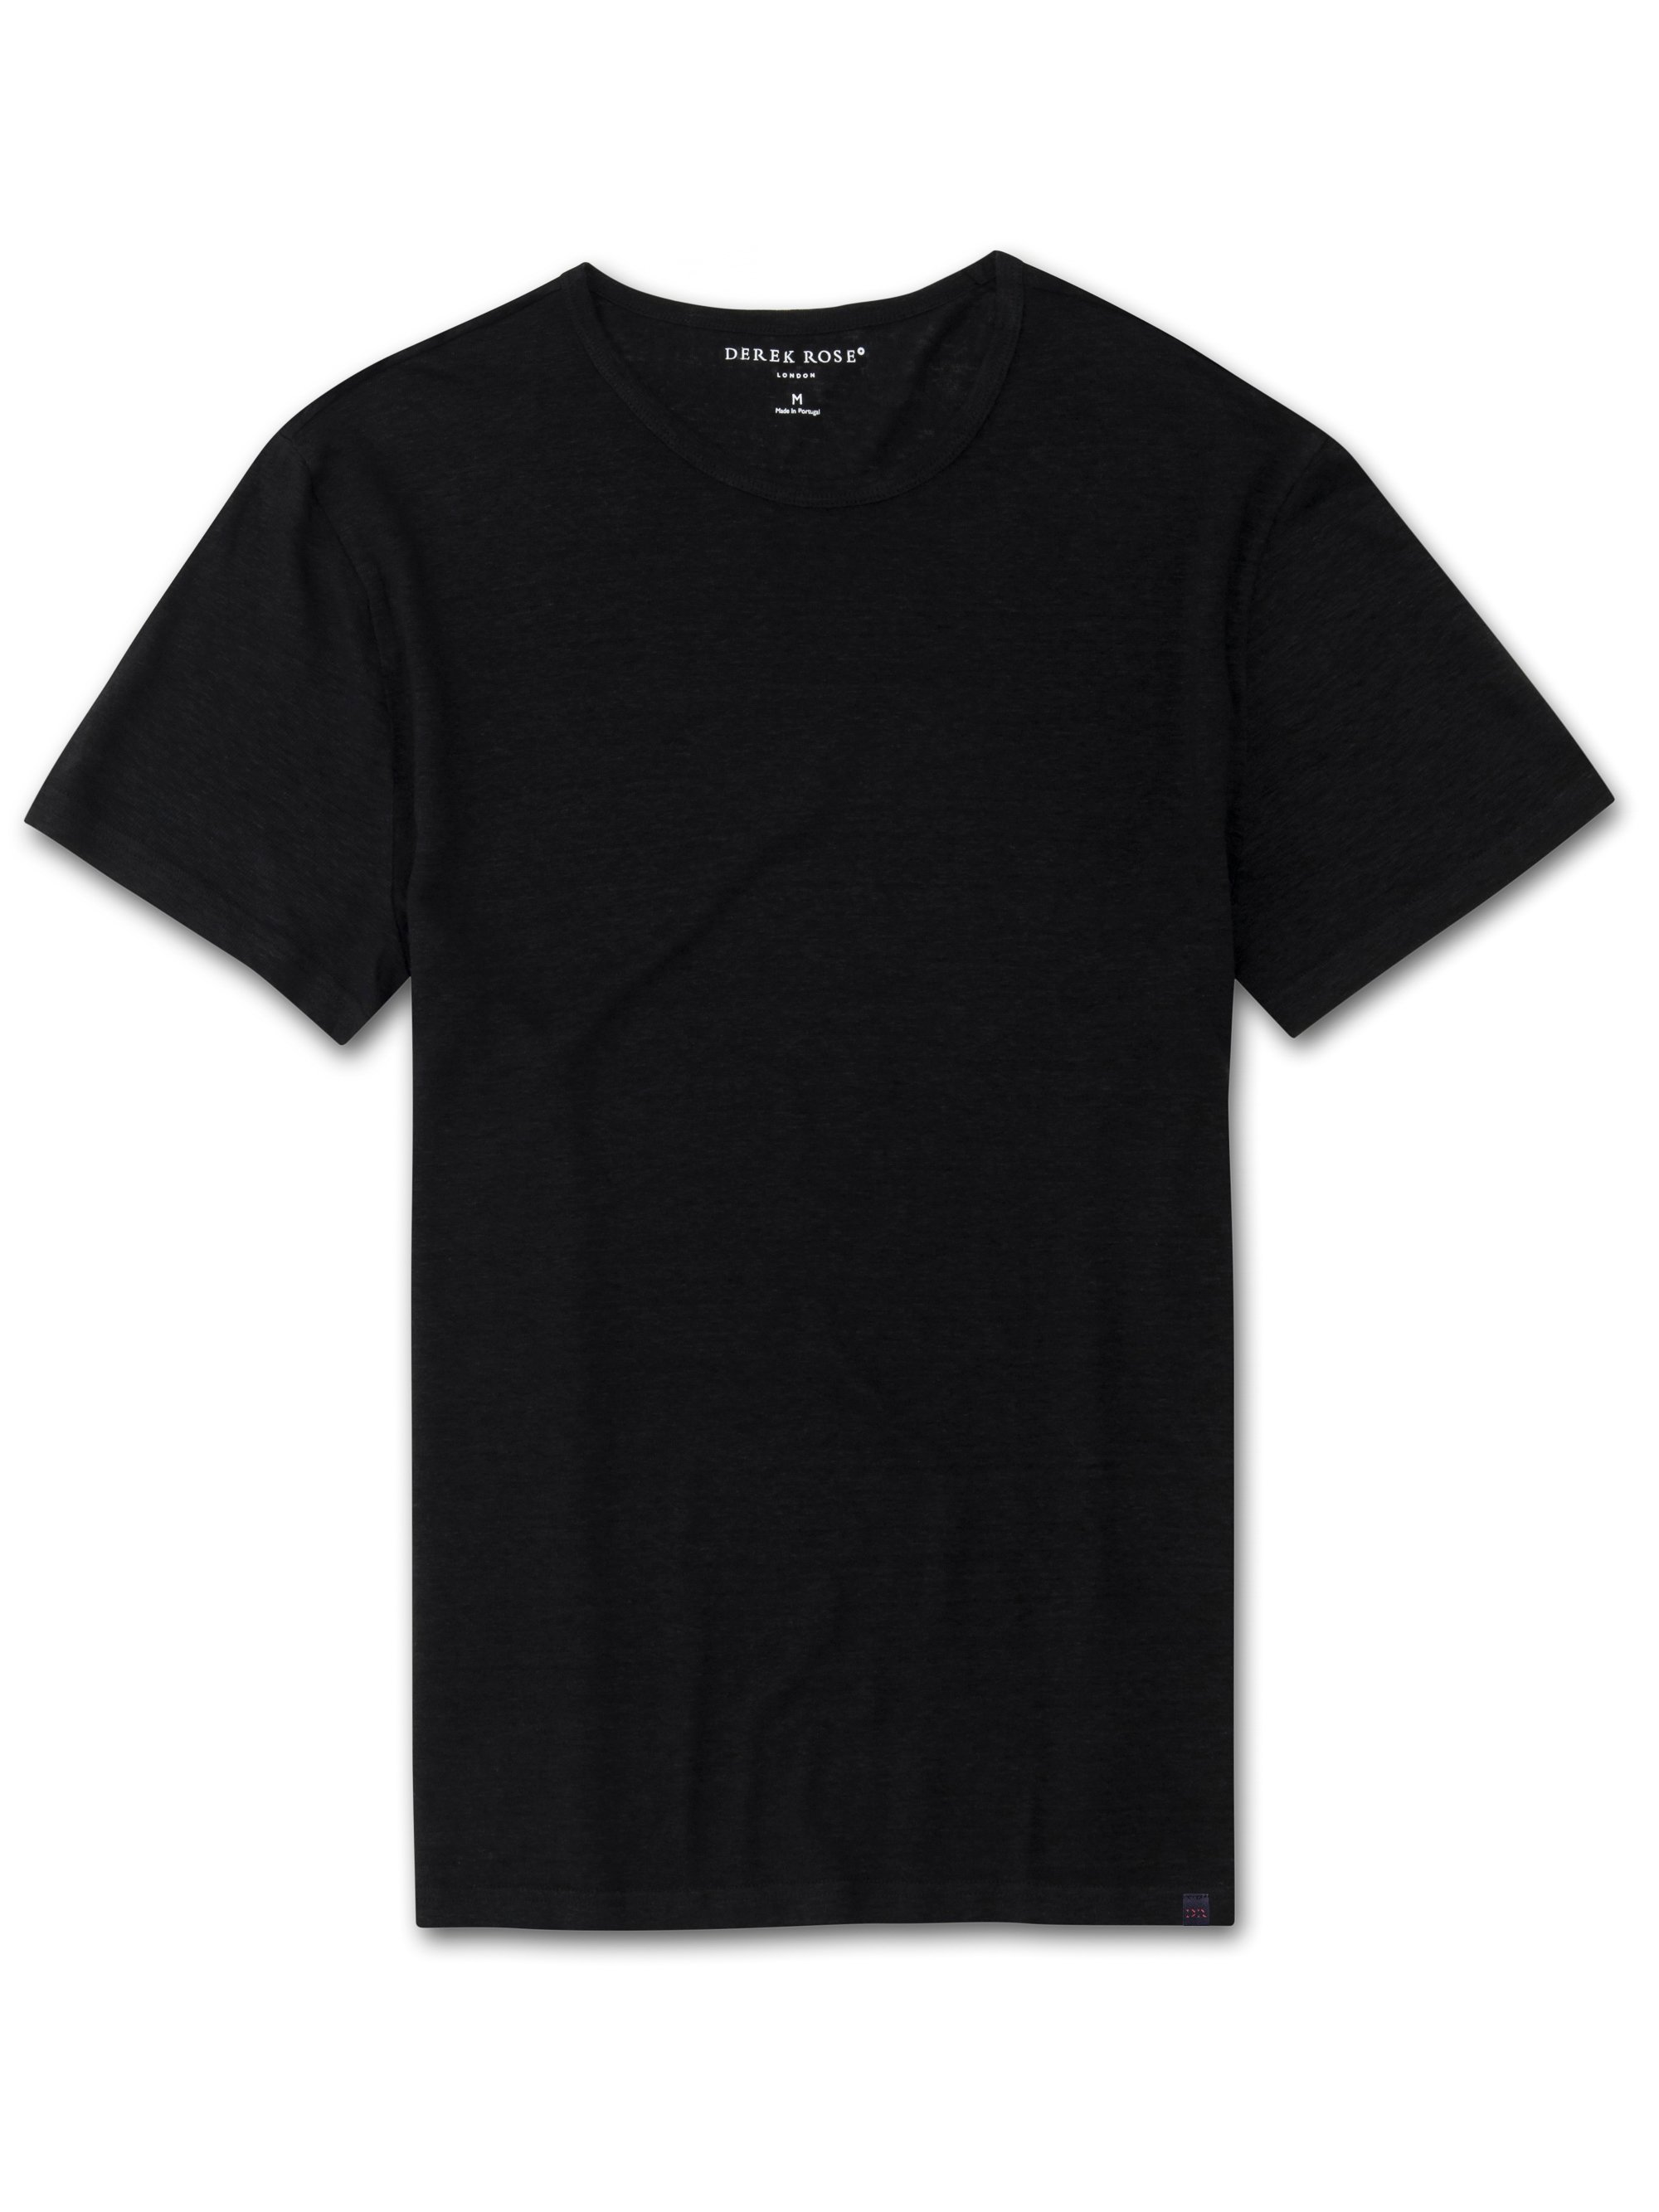 Men's Linen Short Sleeve T-Shirt Jordan Pure Linen Black